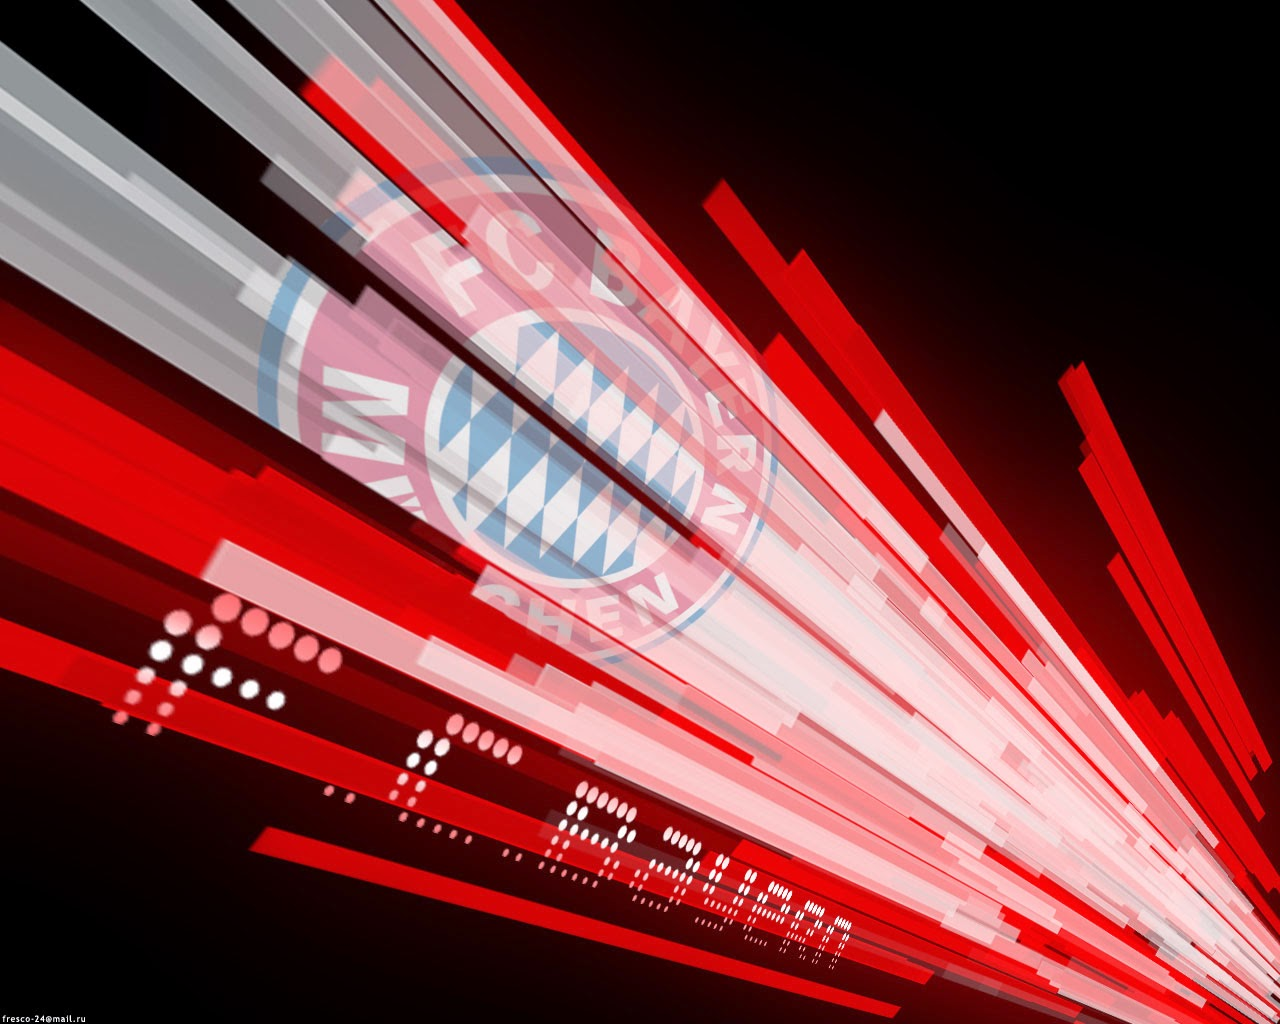 Bayern Munchen Football Club Wallpaper Football Wallpaper HD